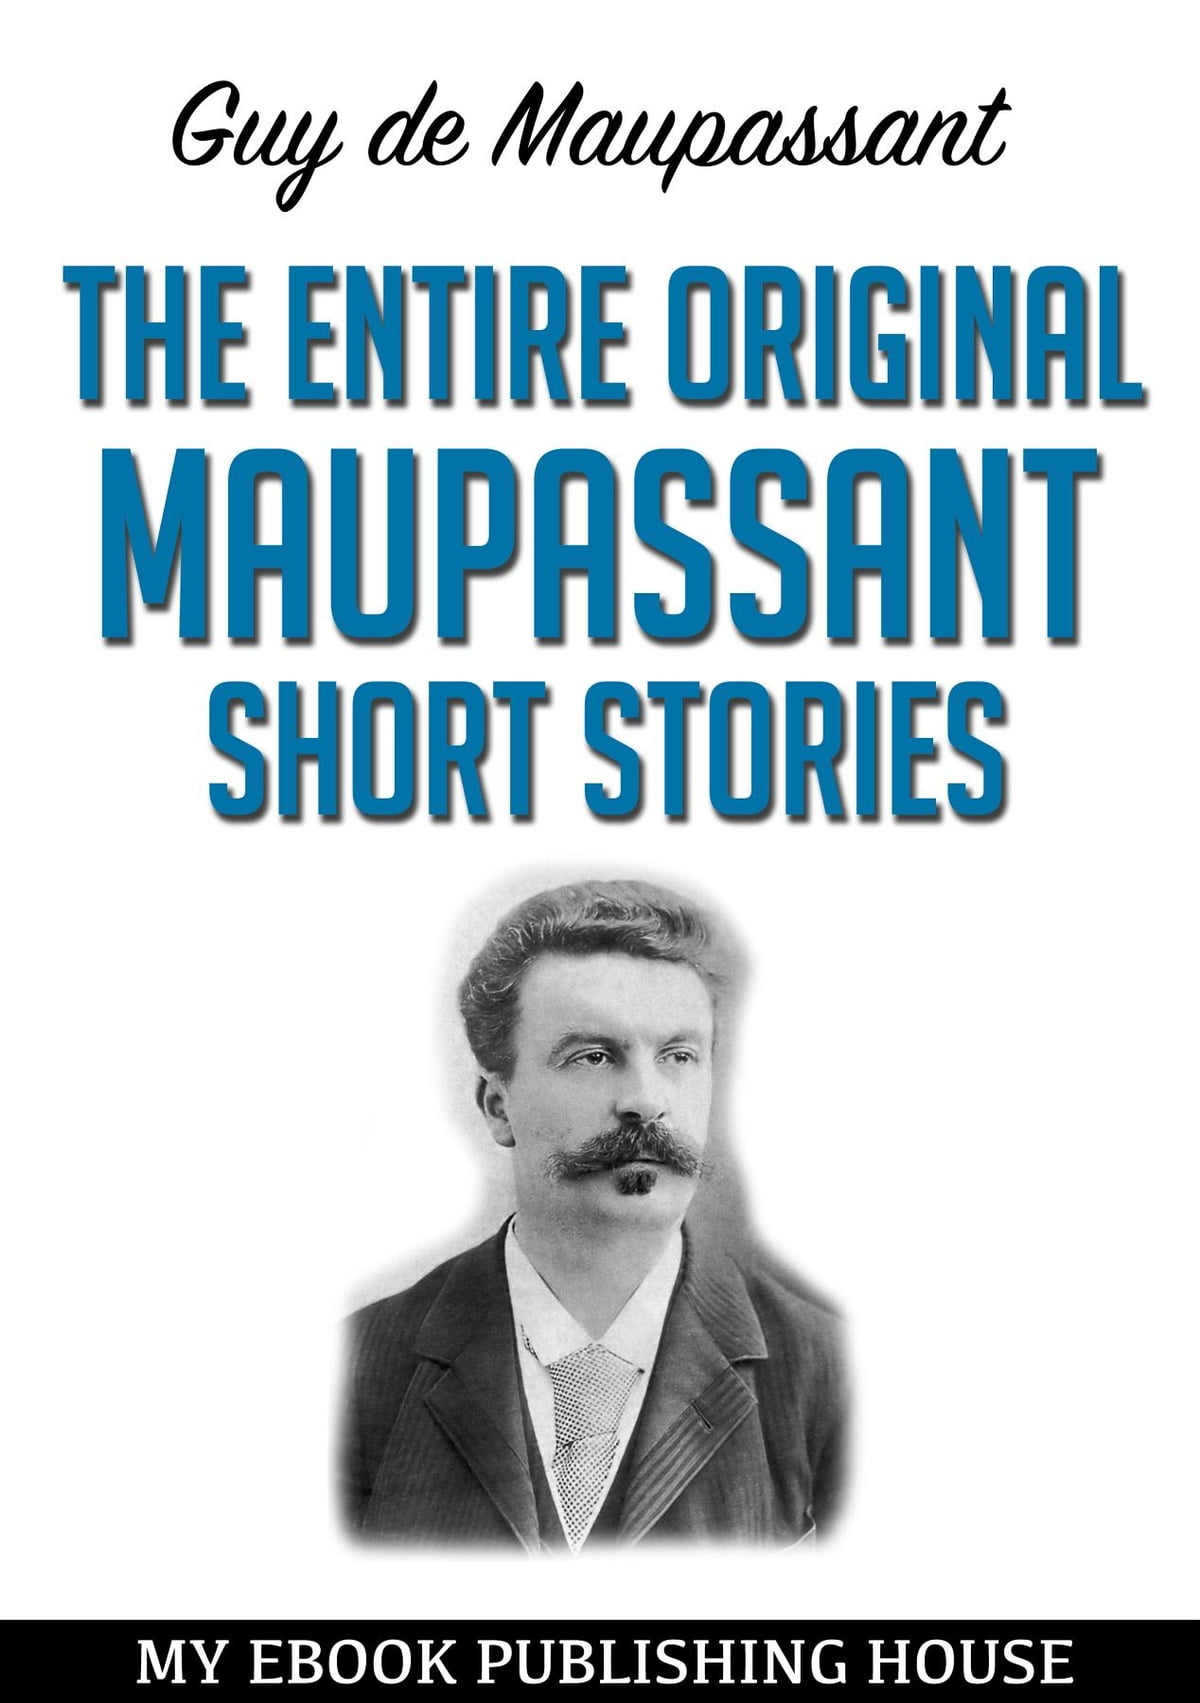 the life of guy de maupassant exposed Henri-rene-albert guy de maupassant was born near dieppe, france he fought in the franco-prussian war and spent his twenties in a boring job with the civil service as a writer he learned most of his technique from his godfather, novelist gustave flaubert, and won instant fame with his first great story, ball-of-fat (1880.